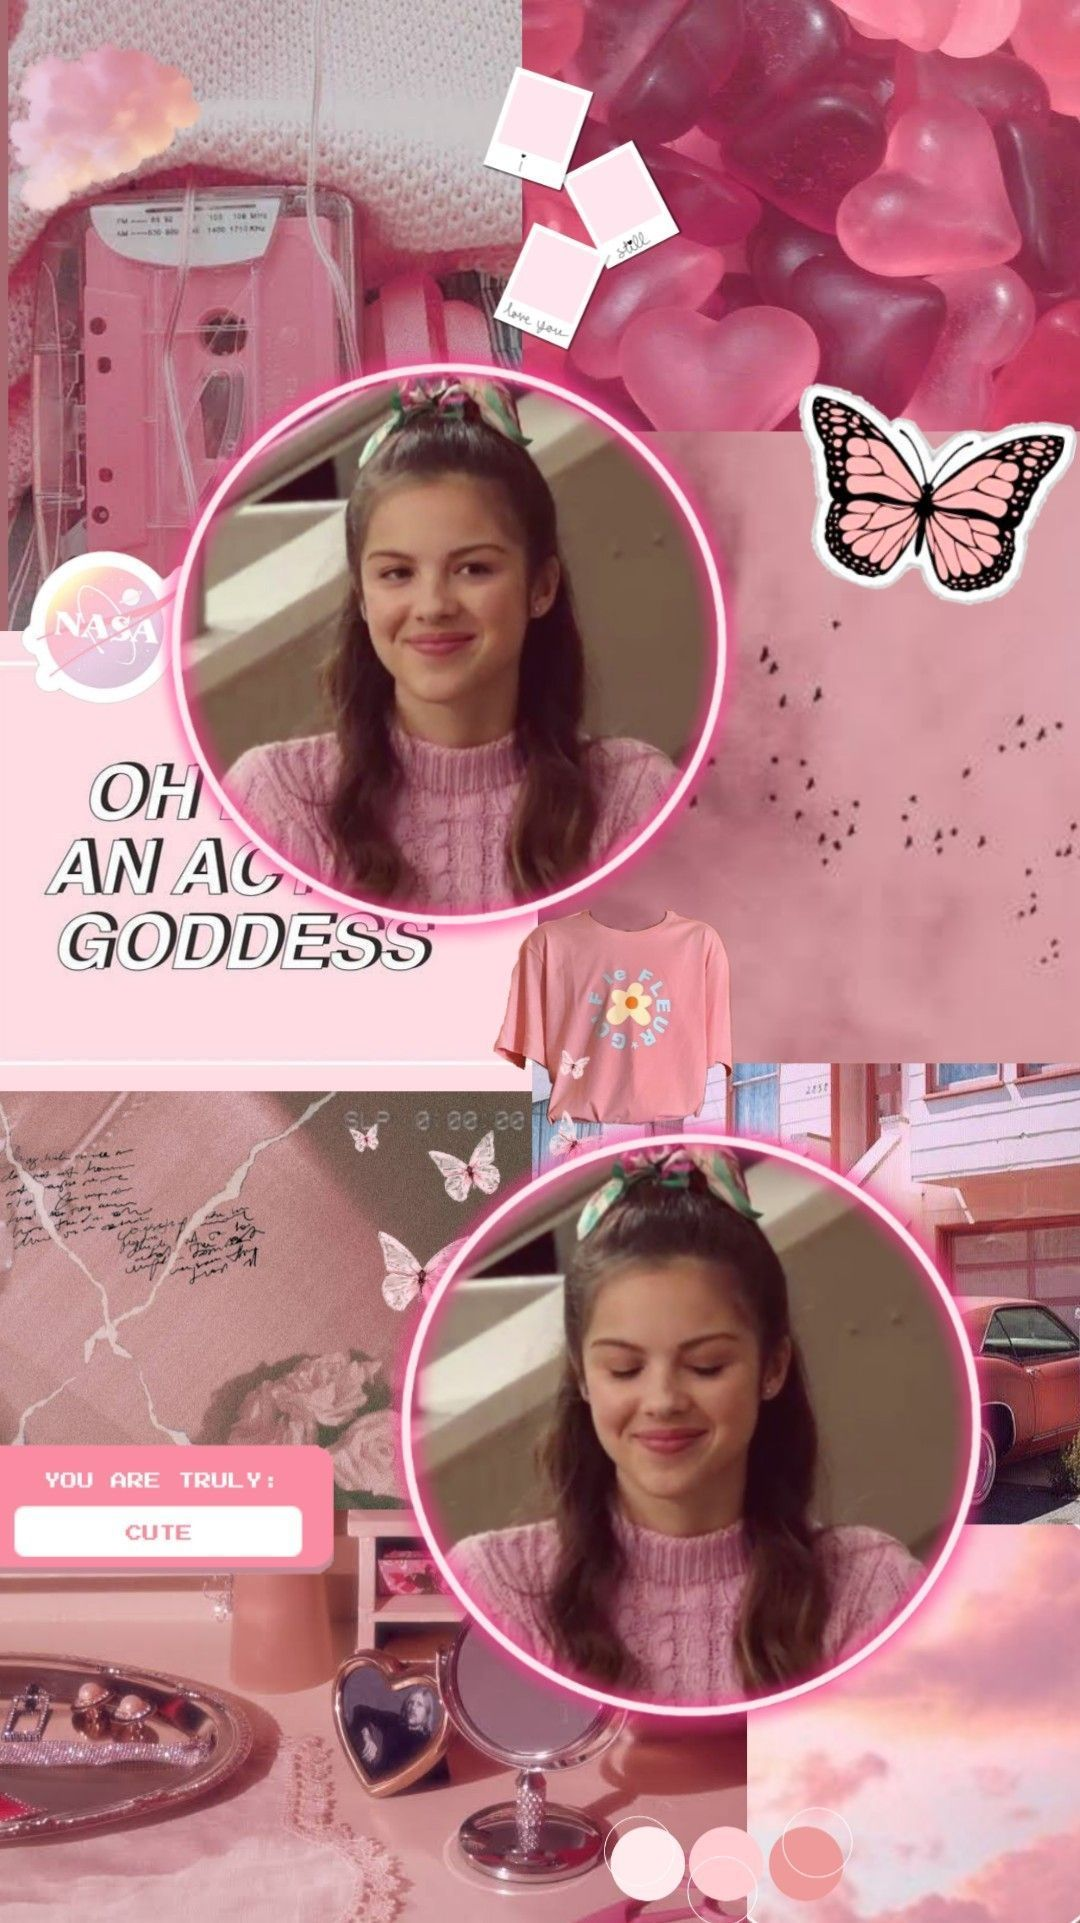 A fan community for olivia rodrigo news, music, shows, fanwork, discussions, and more! Hsmtmts Wallpaper Aesthetic . Hsmtmts Wallpaper   High